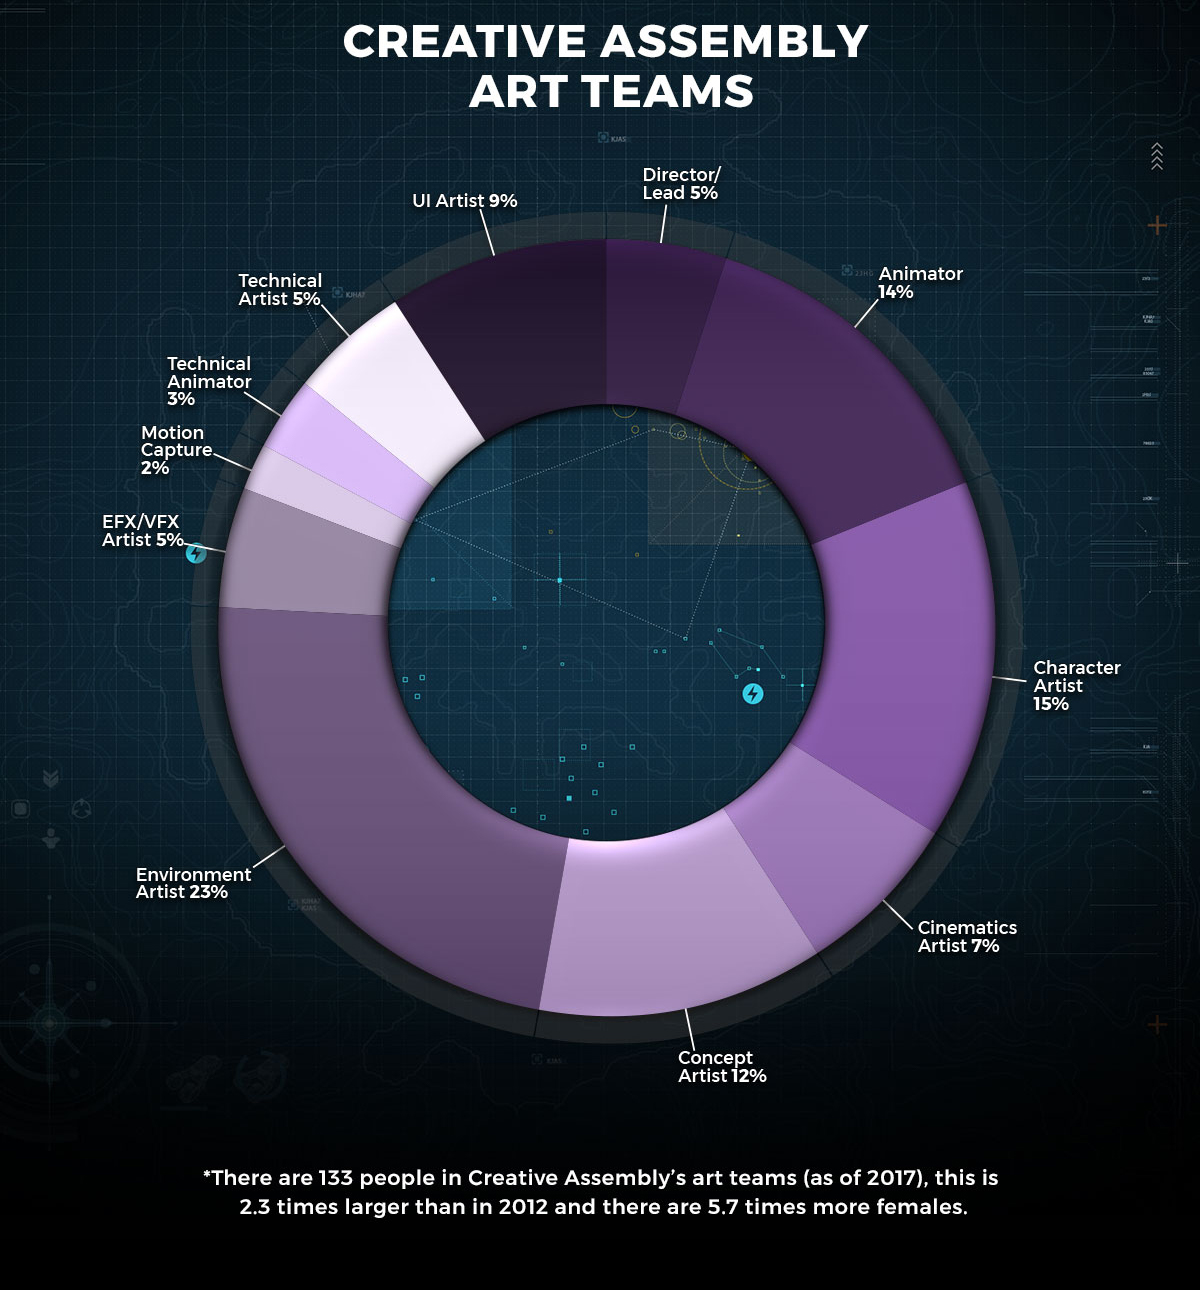 Creative Assembly art teams